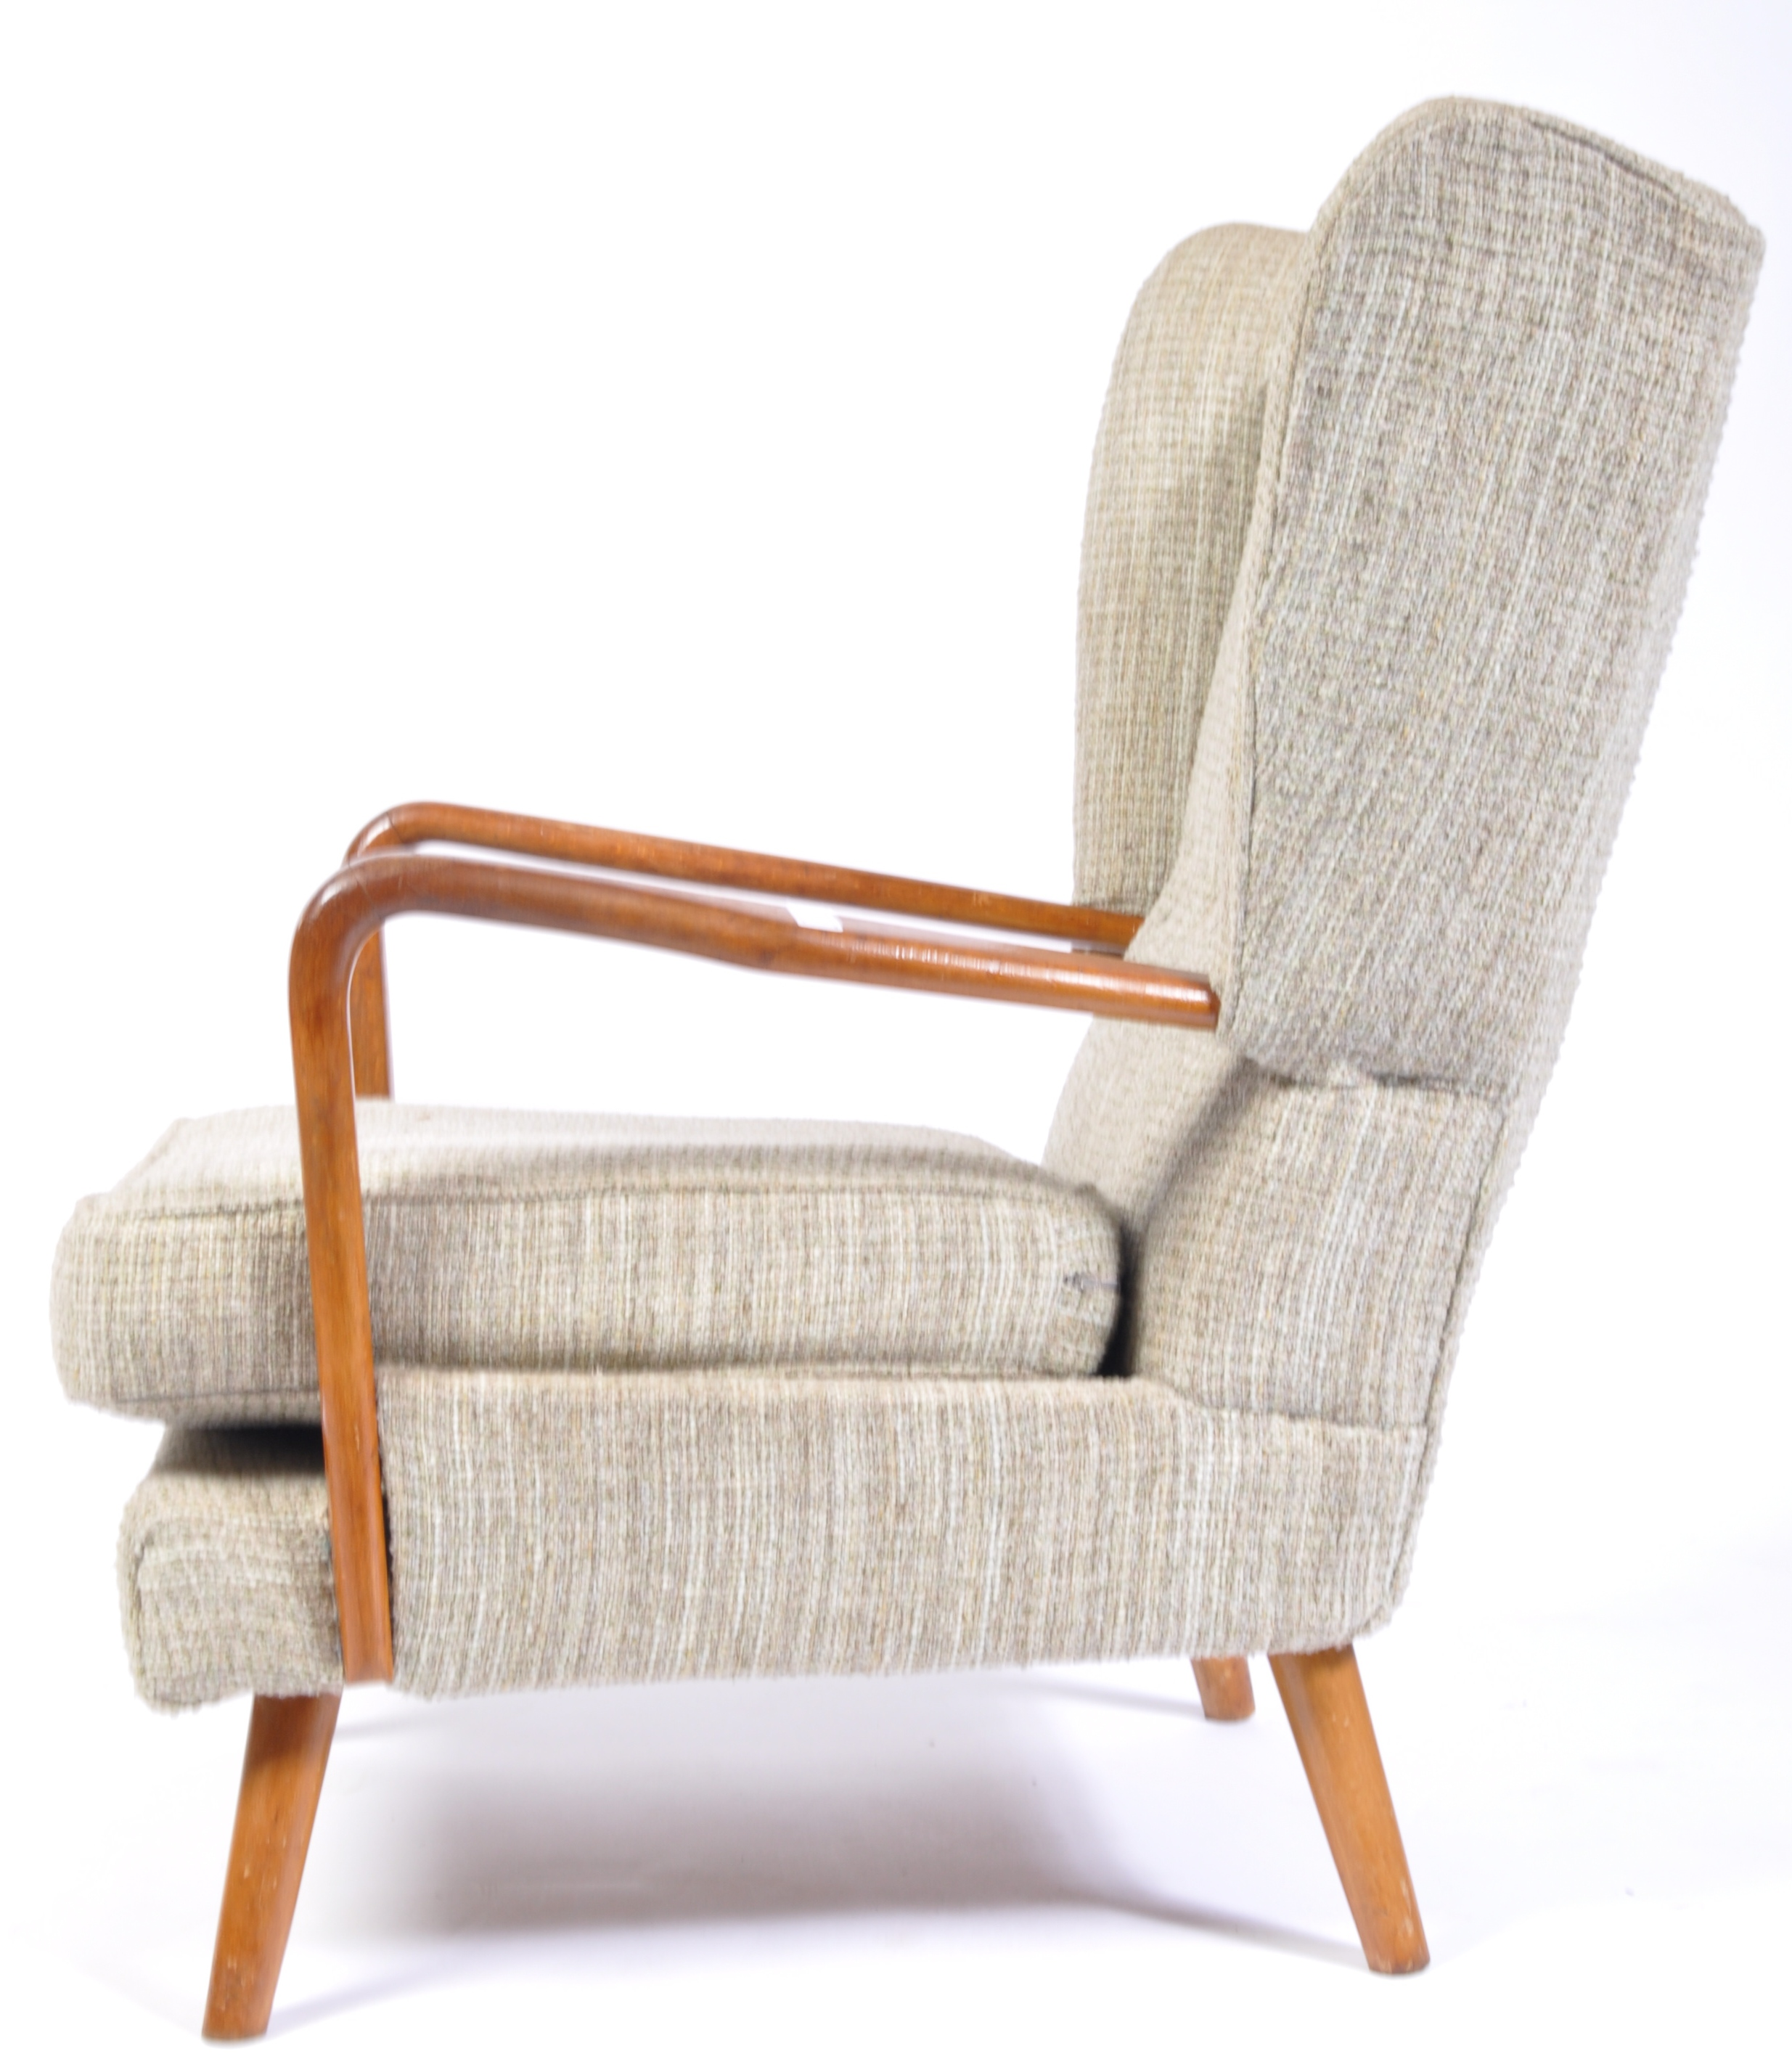 Lot 20 - HEALS 1950'S RETRO VINTAGE BAMBINO CHAIR BY HOWARD KEITH